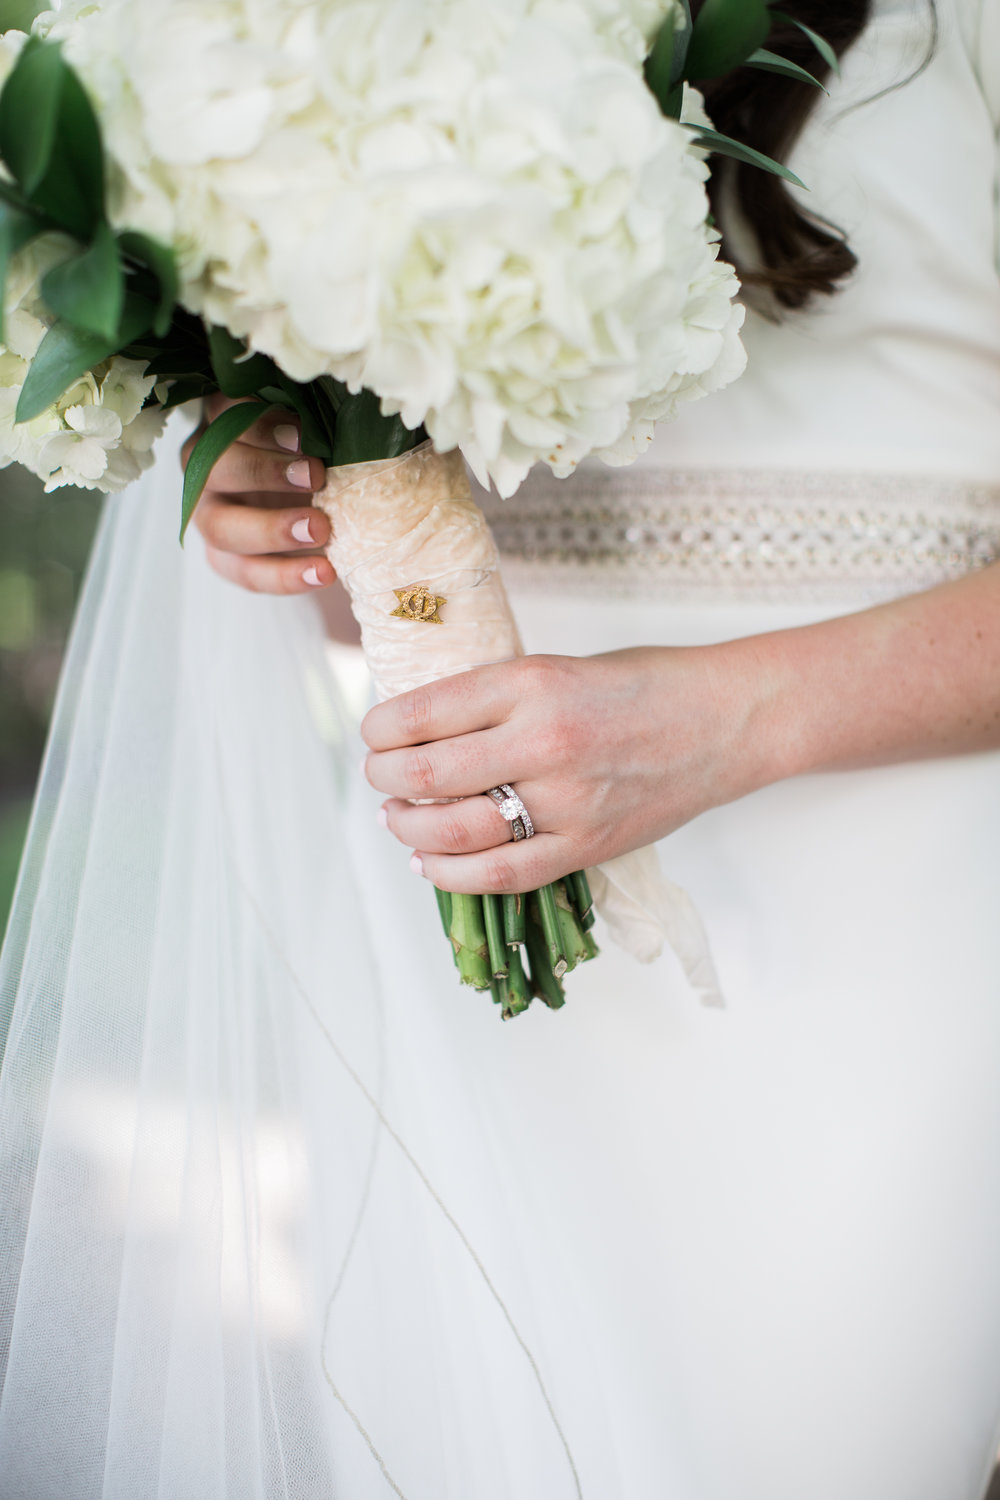 Katelyn_Wollet_Photography_Ann_Arbor_Wedding-68.jpg